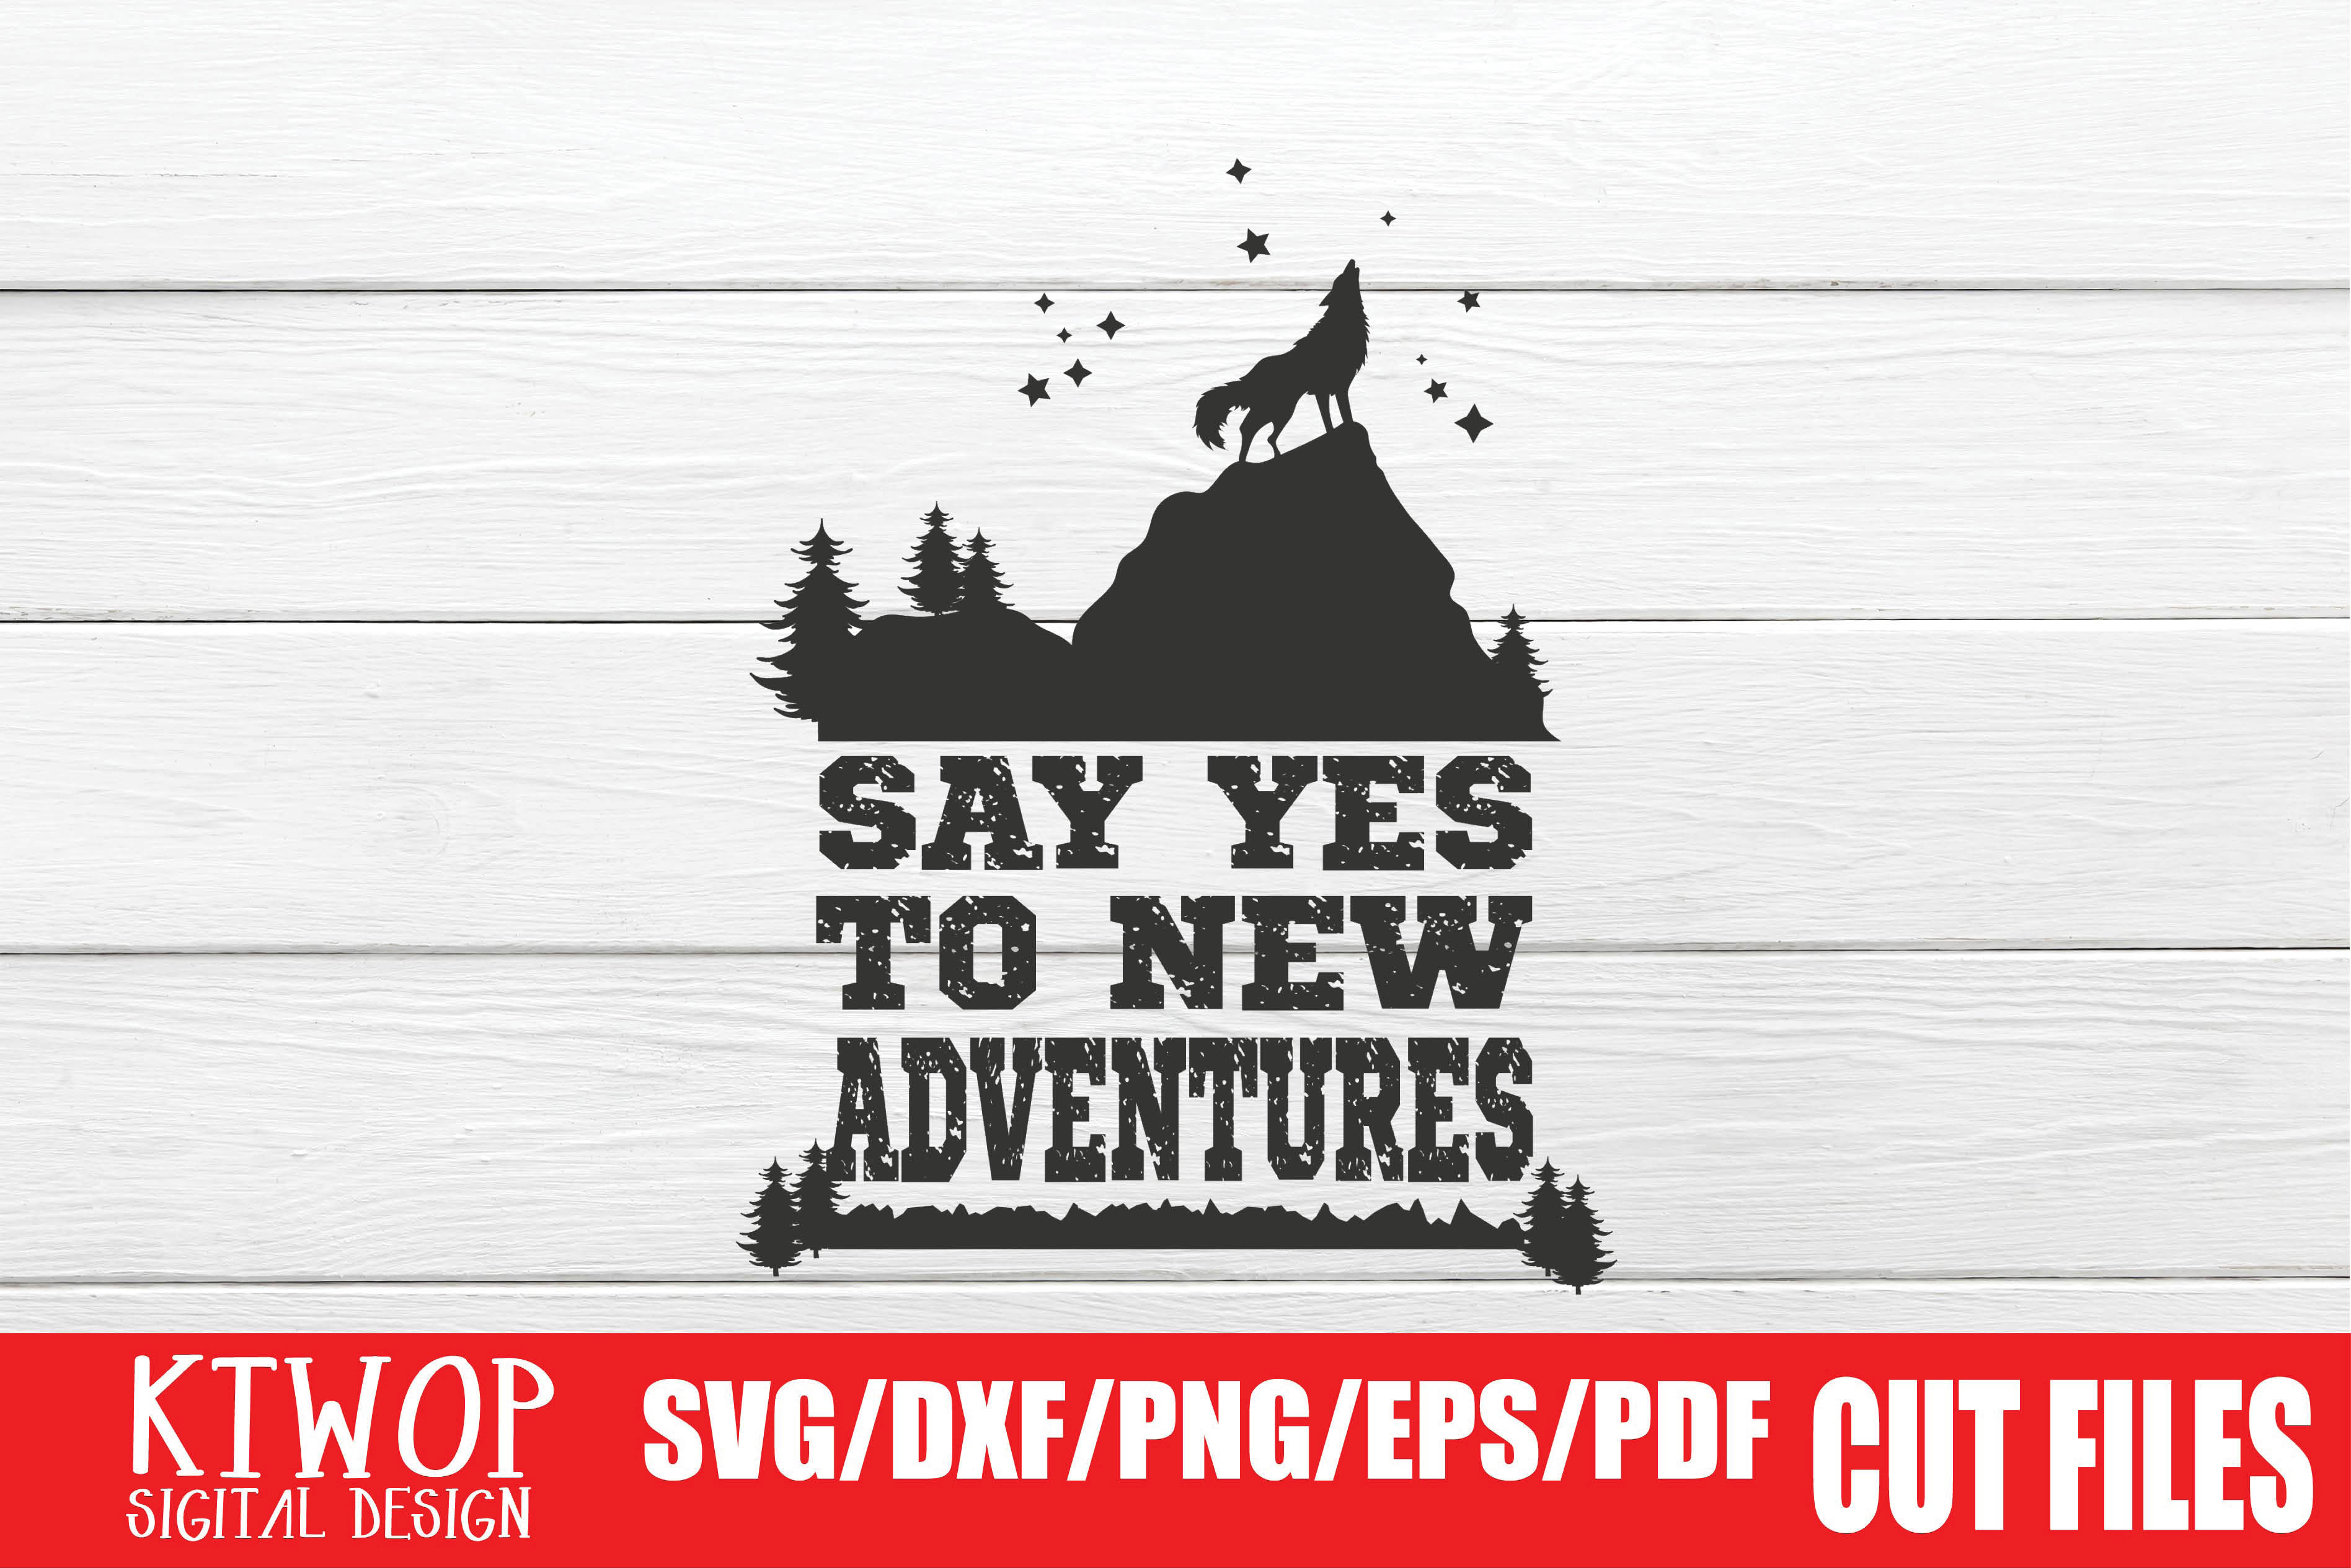 Download Free Say Yes To New Adventures Graphic By Ktwop Creative Fabrica for Cricut Explore, Silhouette and other cutting machines.